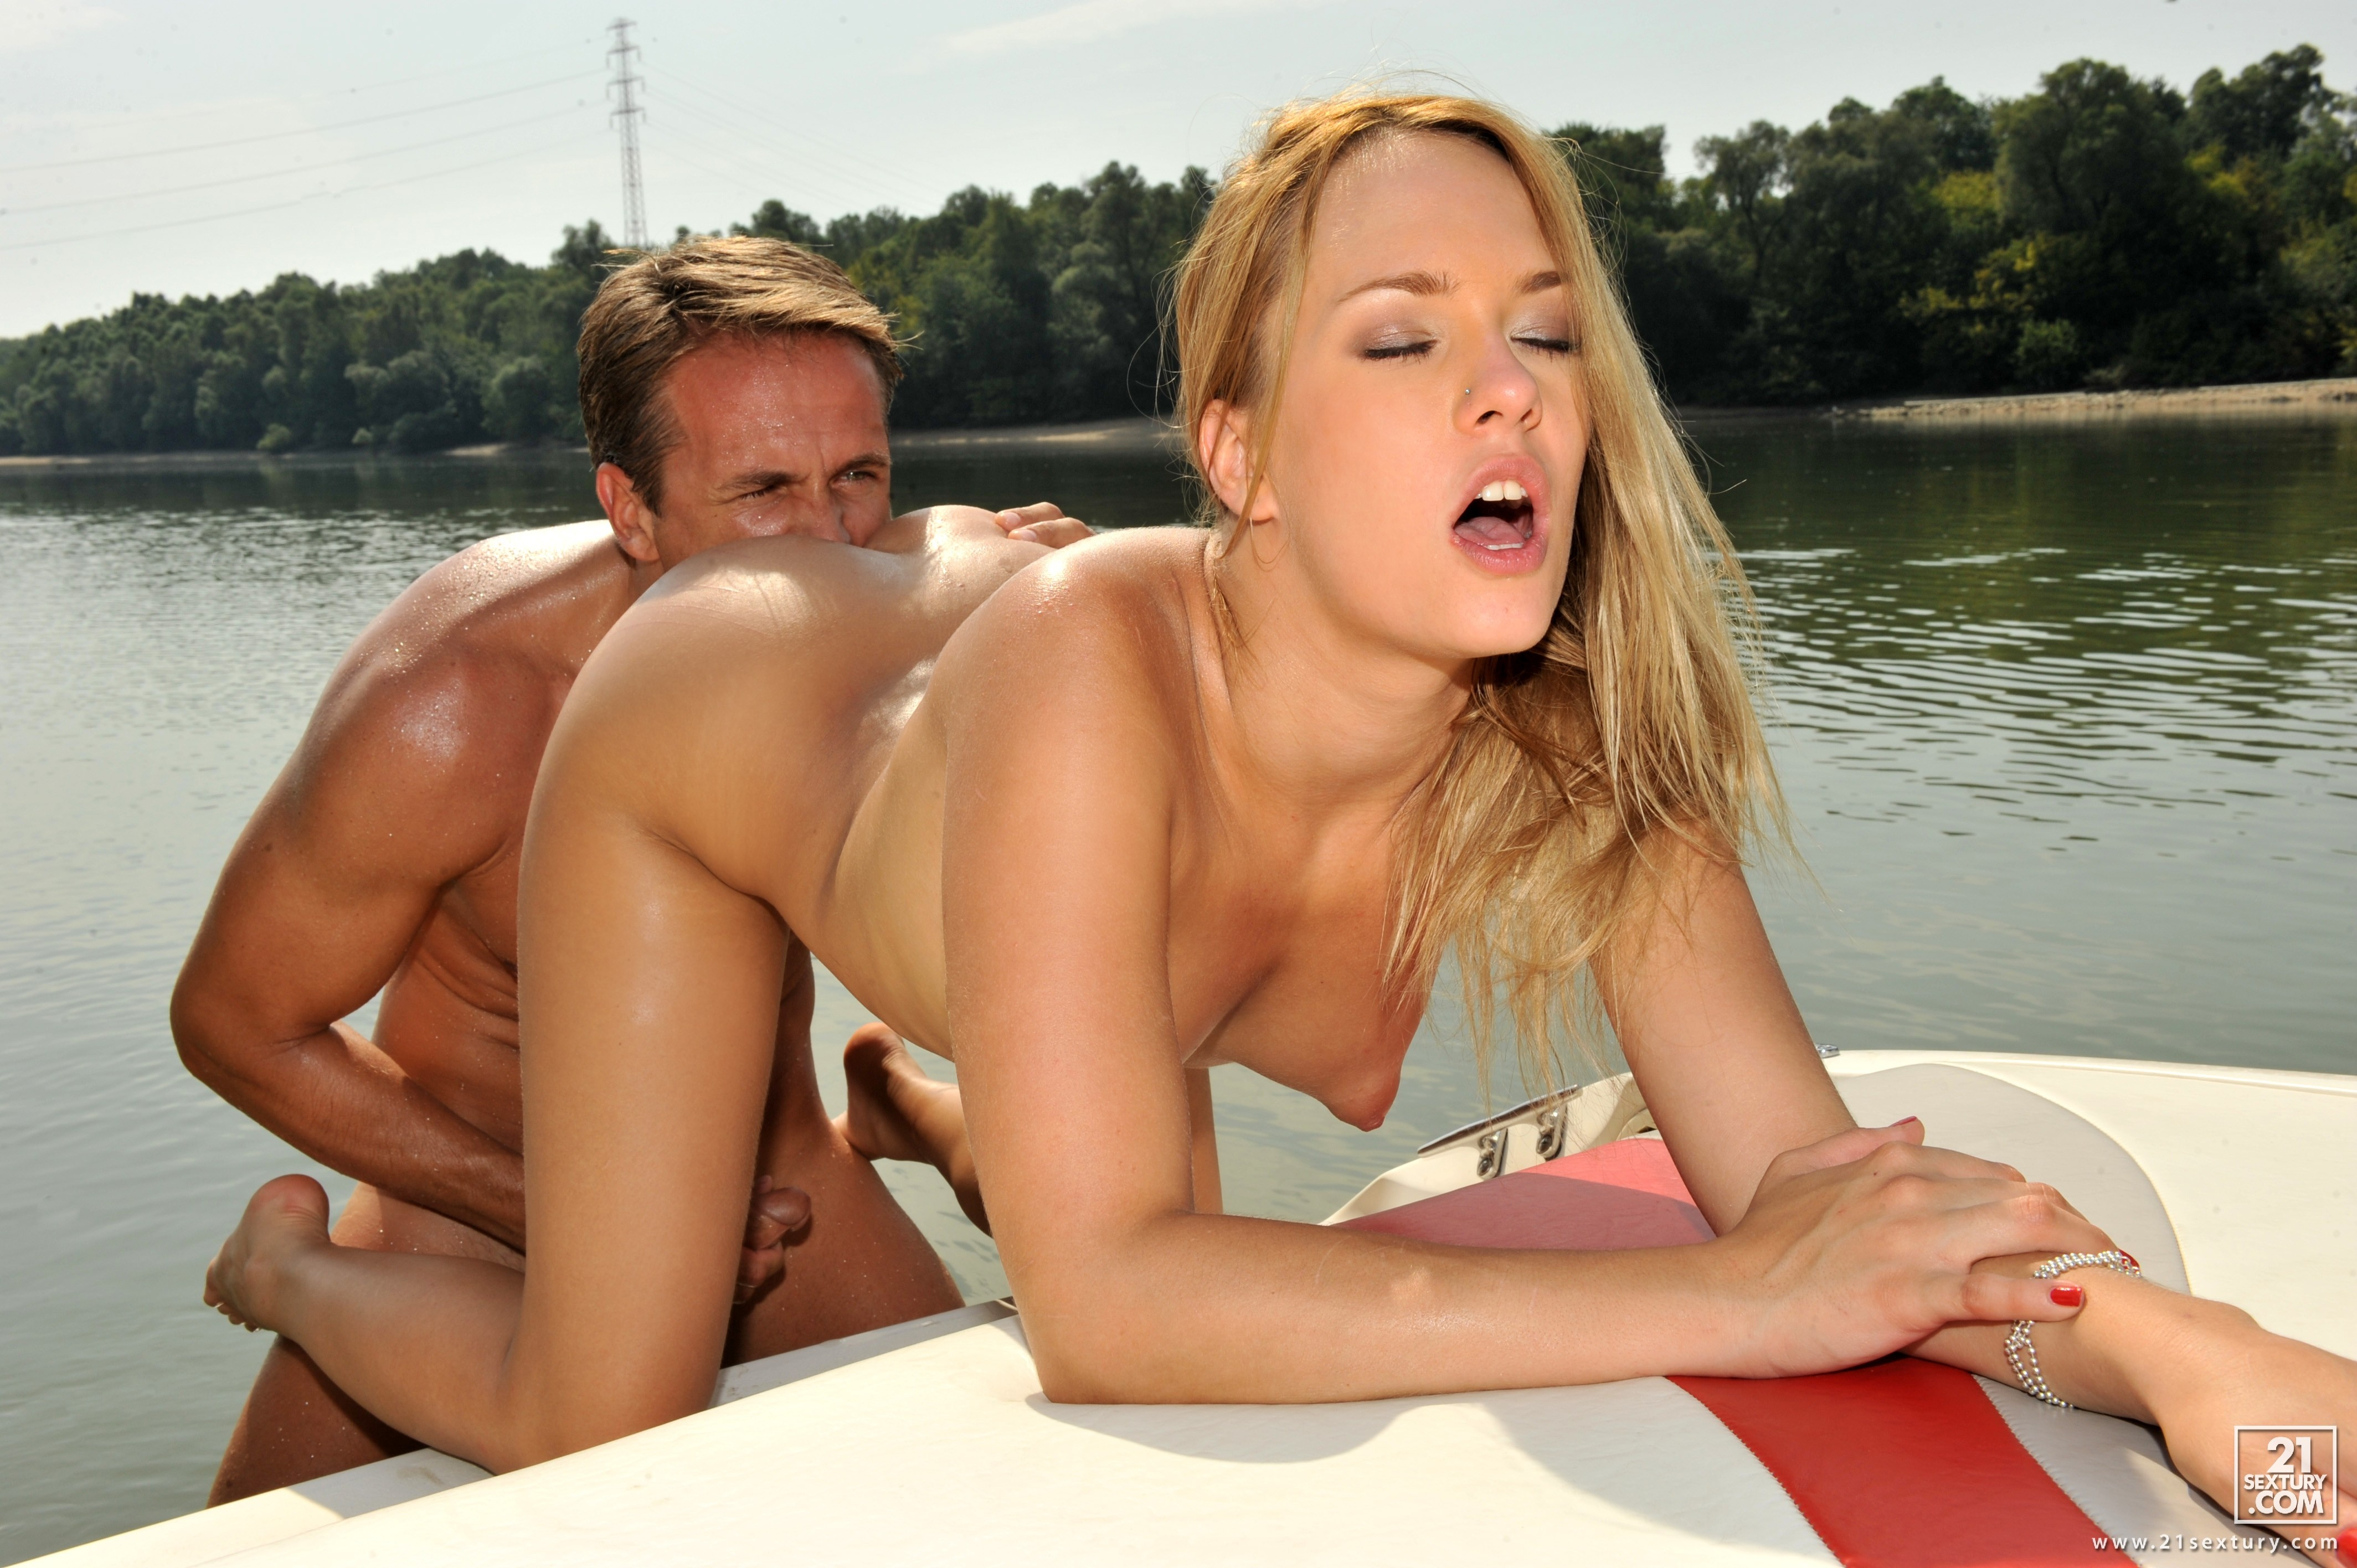 wallpaper blue angel, blond, tits, sea, dick, dick adorer, lovers